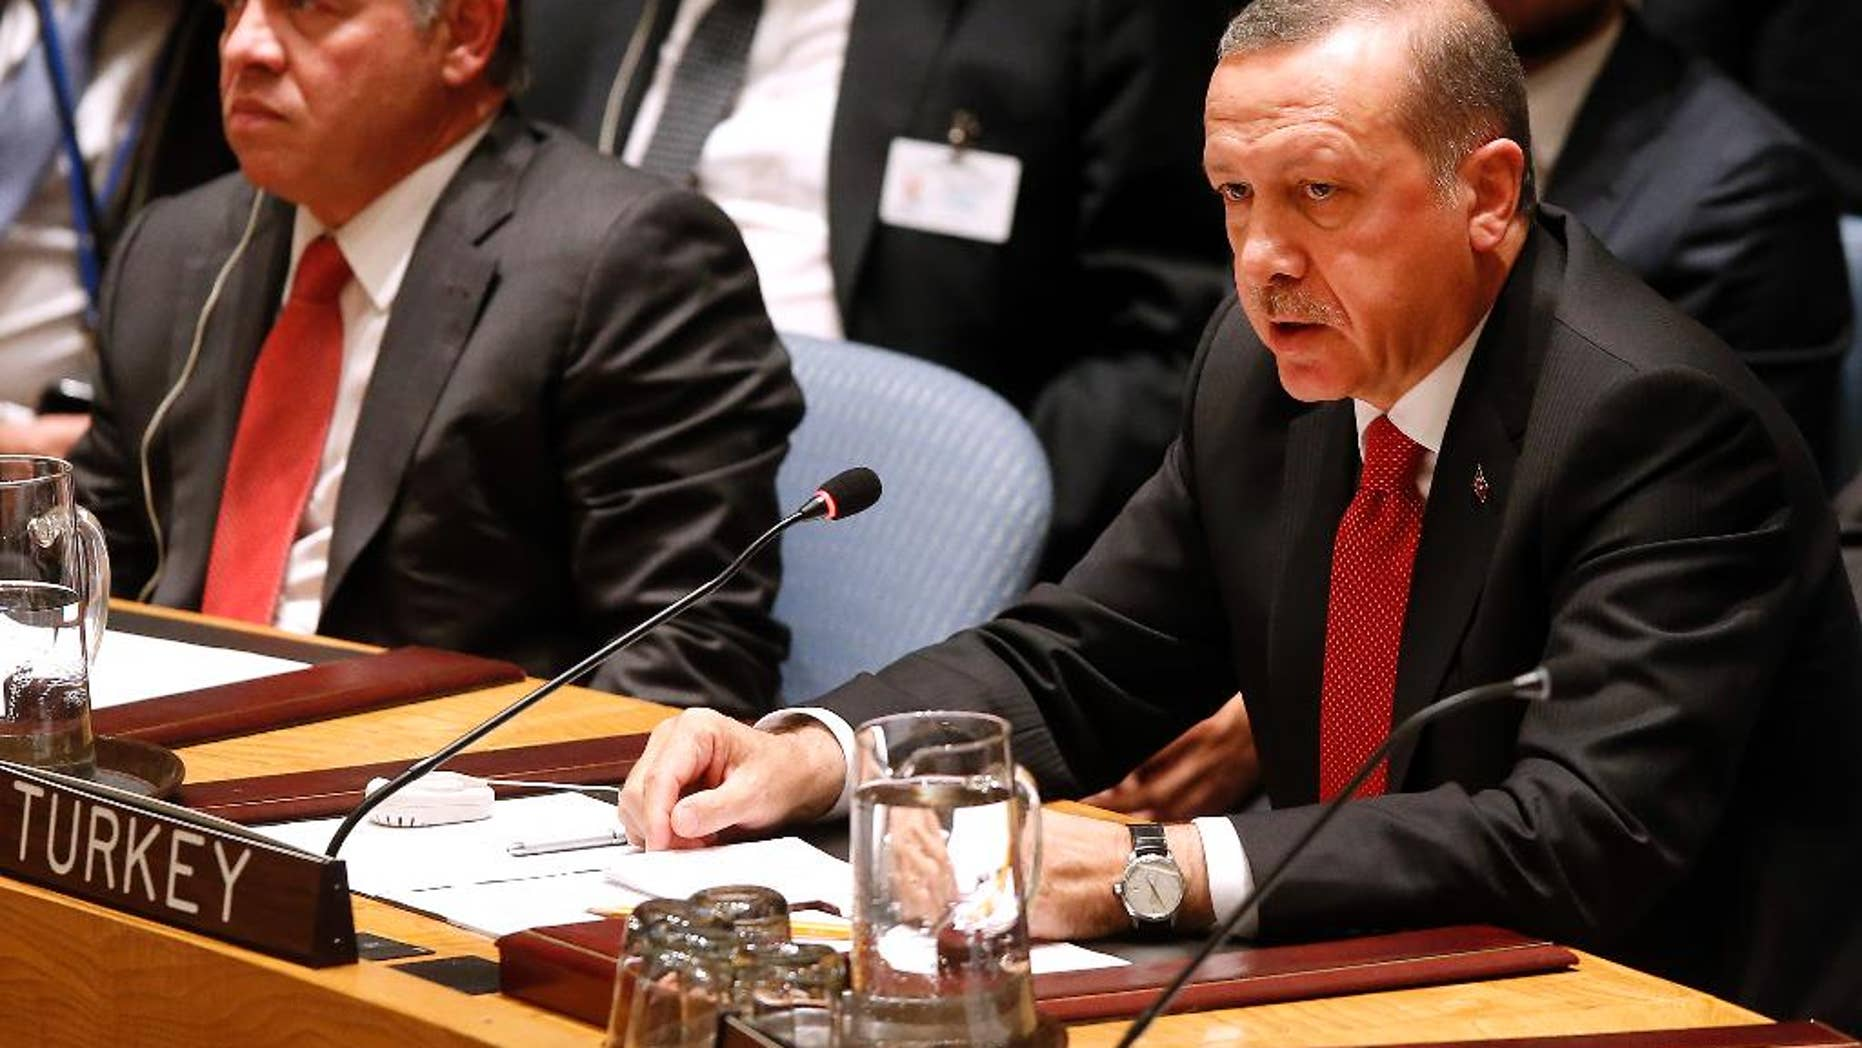 President Recep Tayyib Erdogan of Turkey addresses a meeting of the United Nations Security Council regarding the threat of foreign terrorist fighters during the 69th session of the U.N. General Assembly at U.N. headquarters, Wednesday, Sept. 24, 2014. (AP Photo/Jason DeCrow)